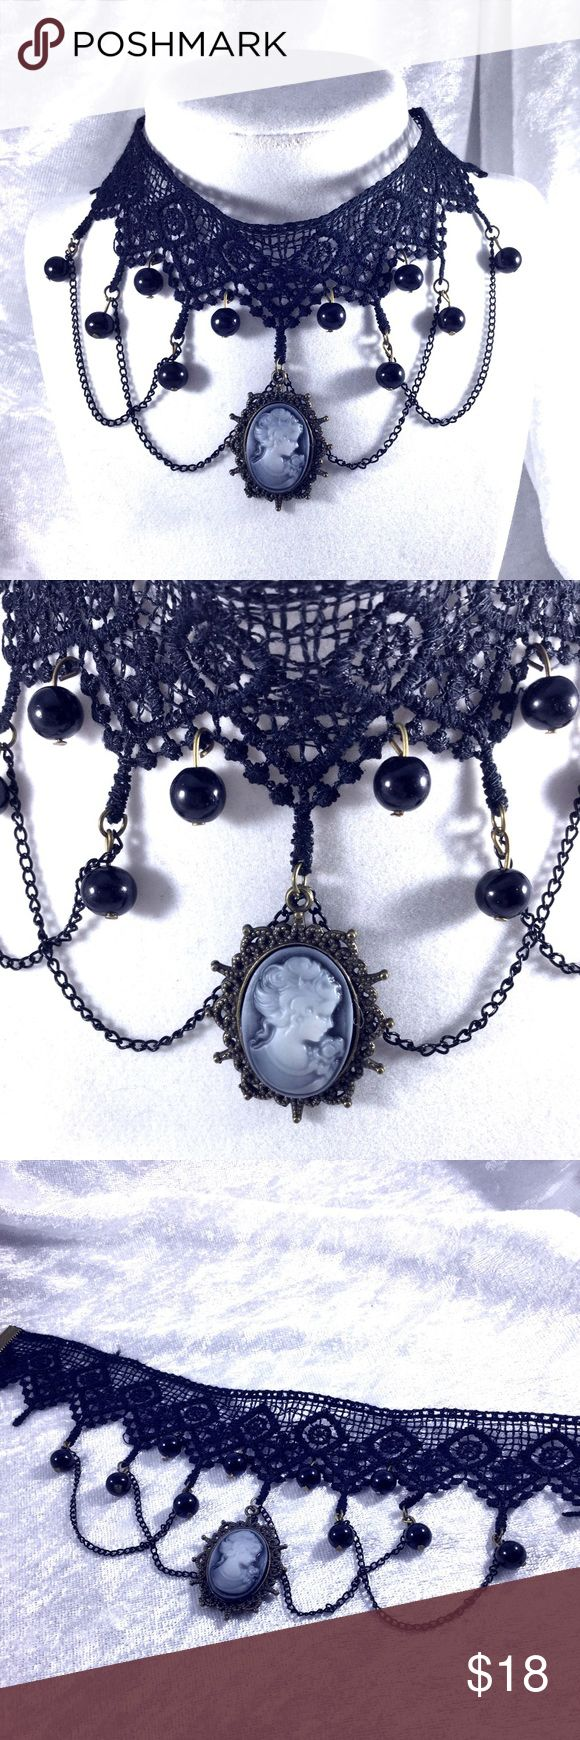 """Gothic Lace & Cameo Statement Choker Necklace Lace, chain, bed and black and white cameo gothic retro Victorian punk, steampunk, choker.   14.5"""" adjustable. Costume jewelry. Lace is a delicate lace. Save the most with bundles. I offer 25% off on bundles of 2+ items. I accept reasonable offers. No trades. I only do business on Poshmark. Boutique Jewelry Necklaces"""